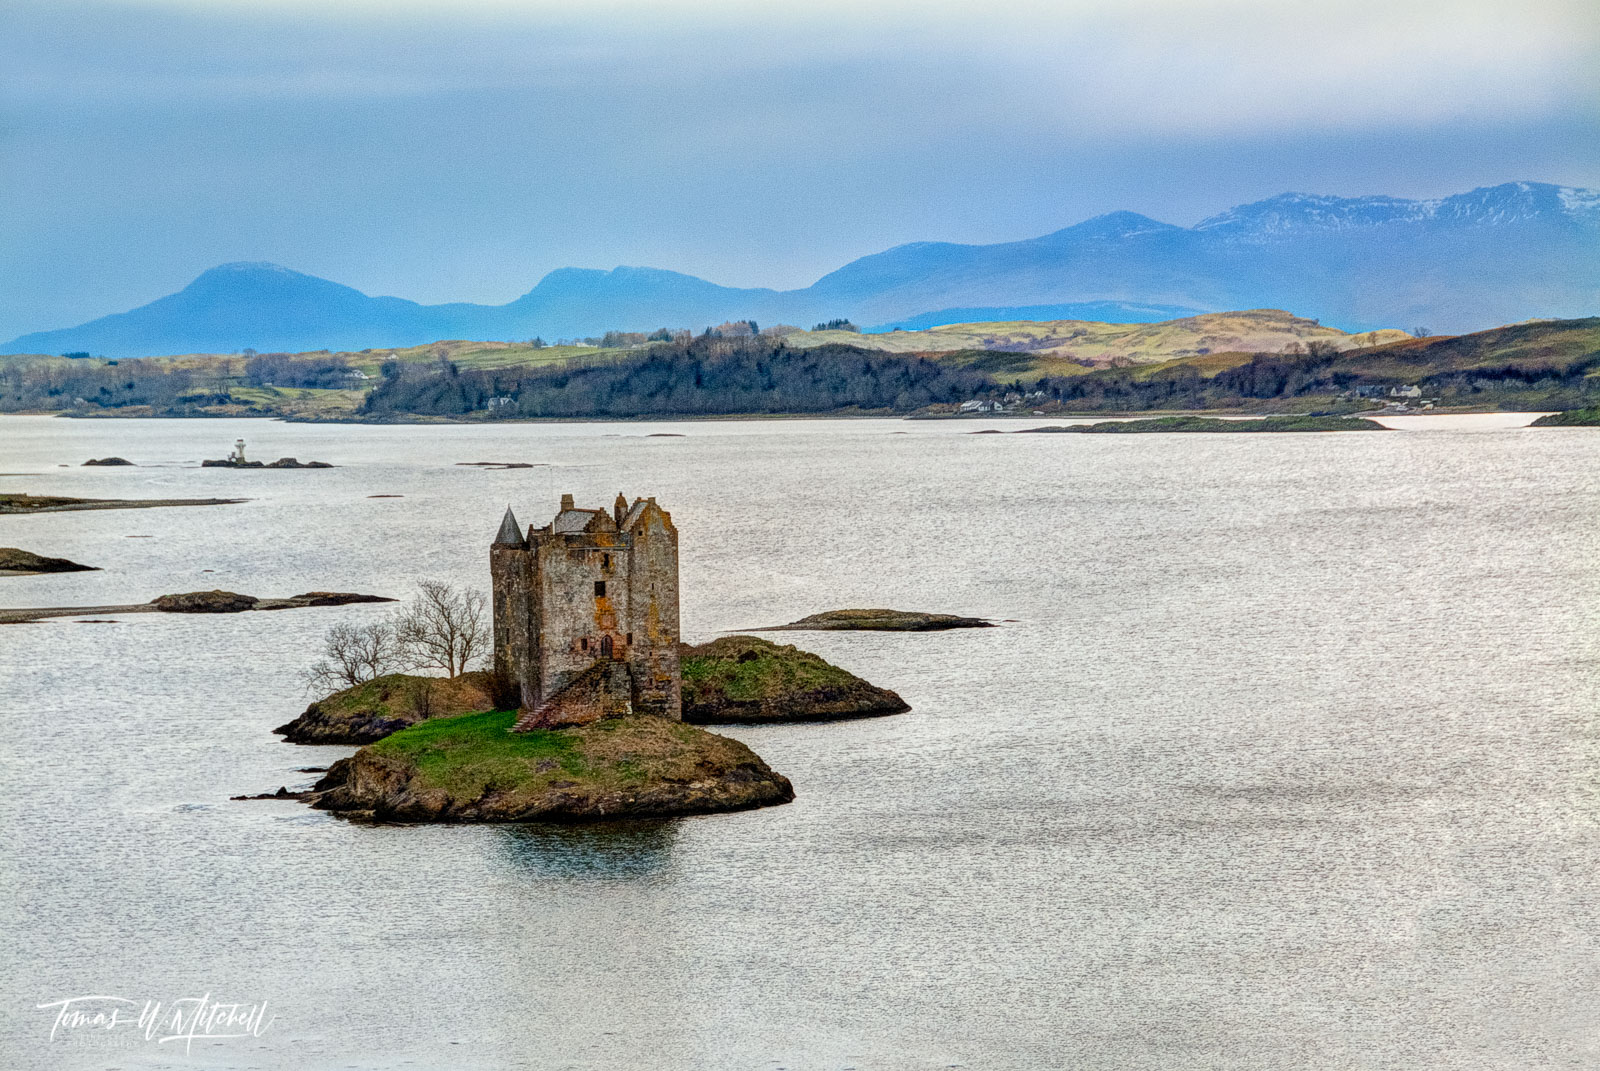 limited edition, museum grade, fine art, prints, castle stalker, scotland, castles, monty python, holy grail, castle aaaarrggg, oban, loch laich, soft light, photograph, layers, light, castle, green, , photo